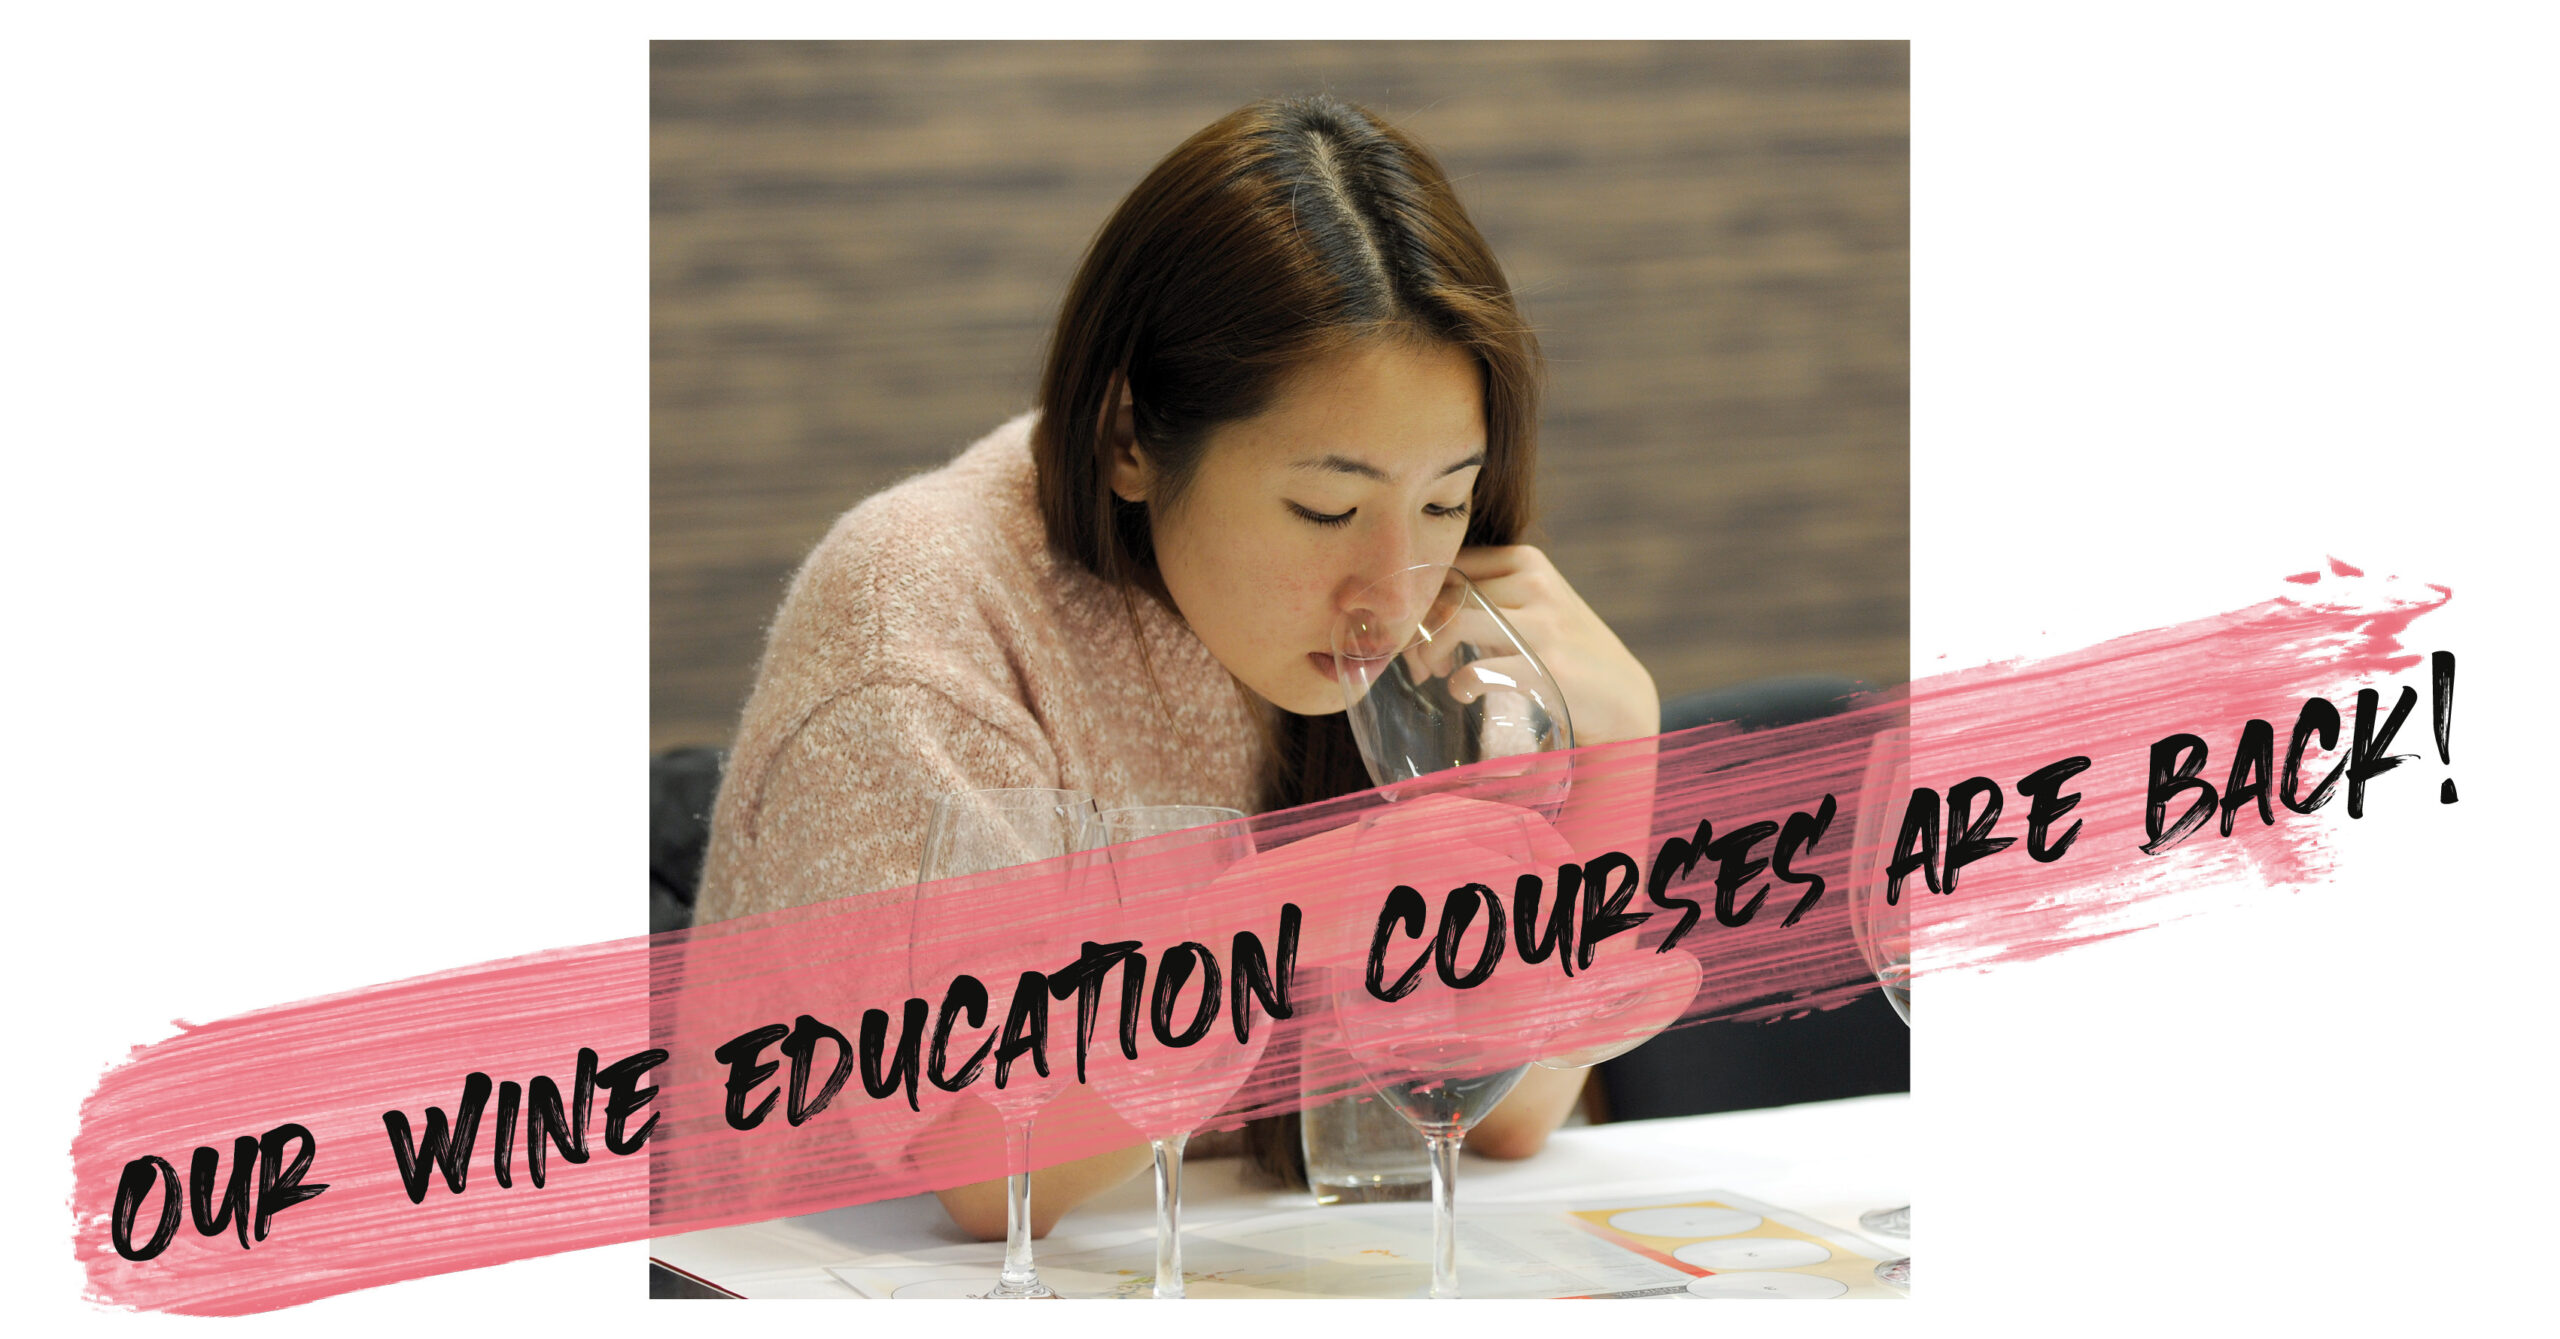 Wine Courses Back